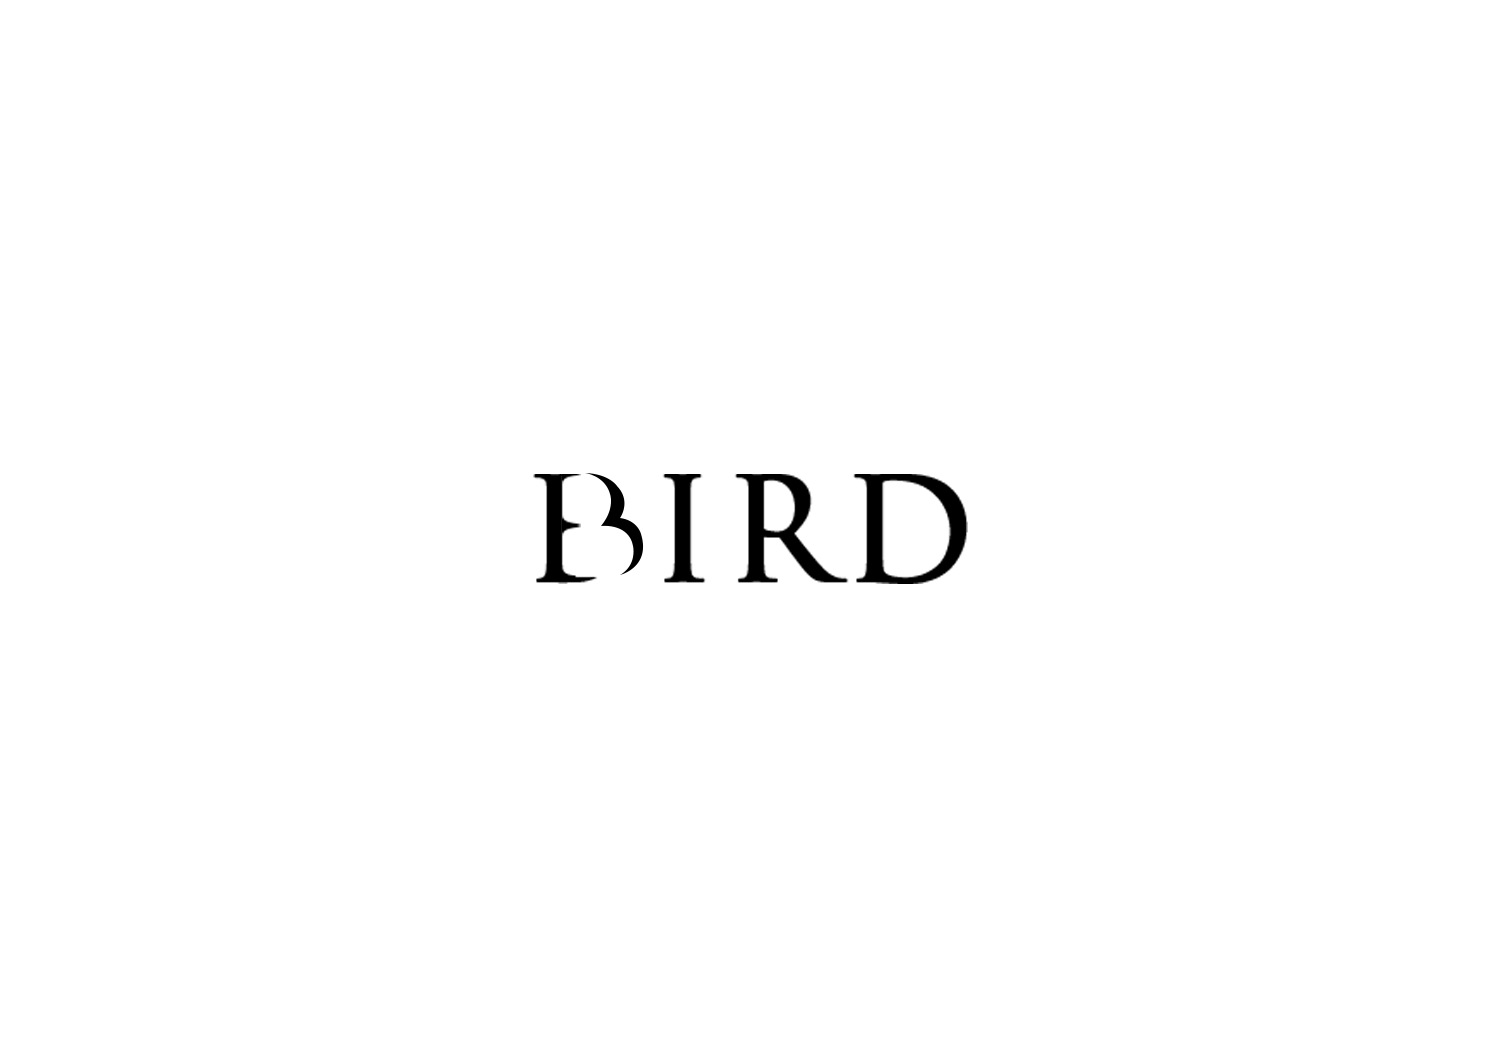 Bird text logo design inspiration